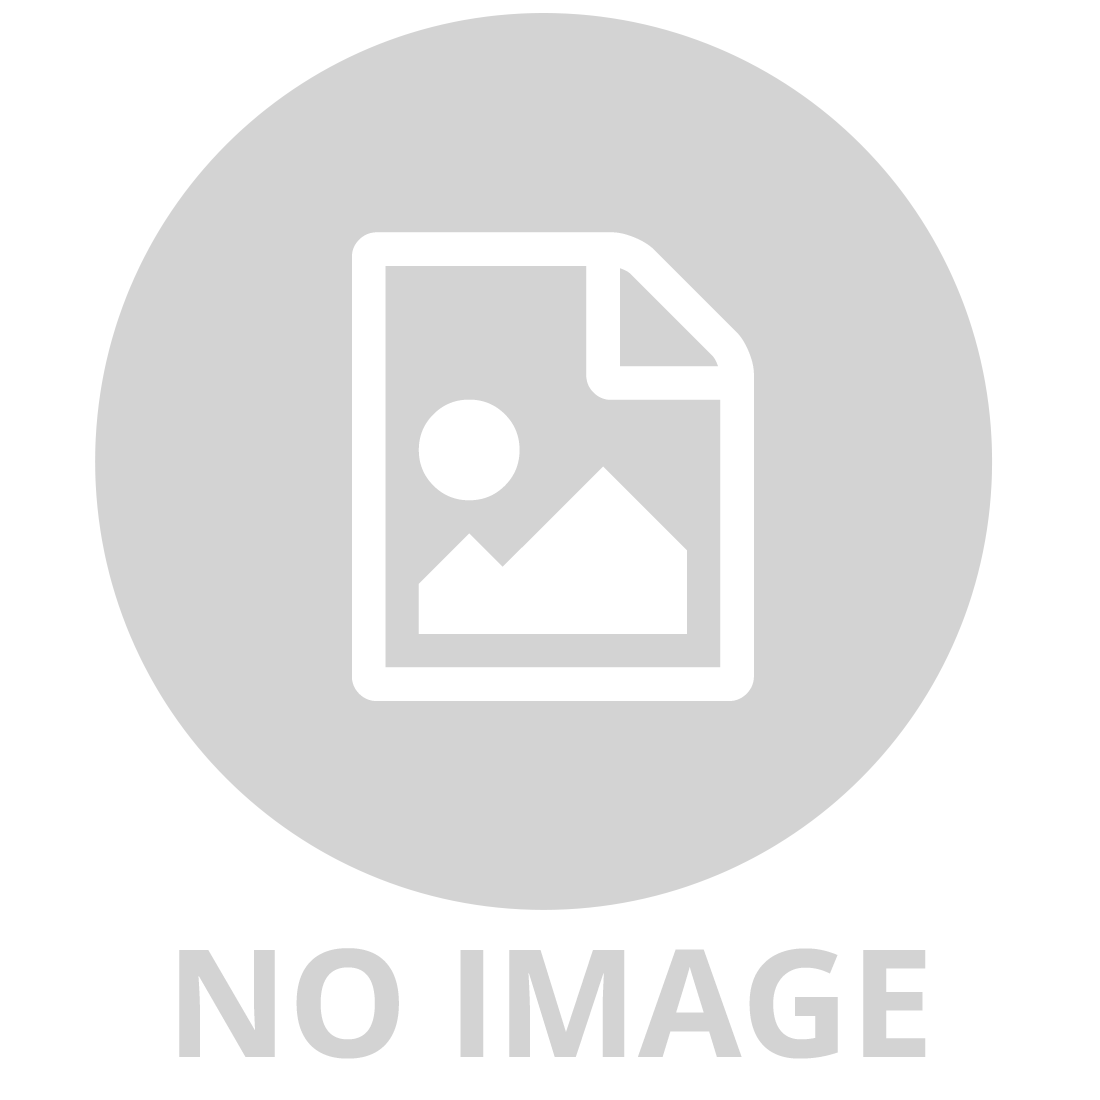 Pixie Smart Dimmer (Bluetooth) SDD350BT 350W